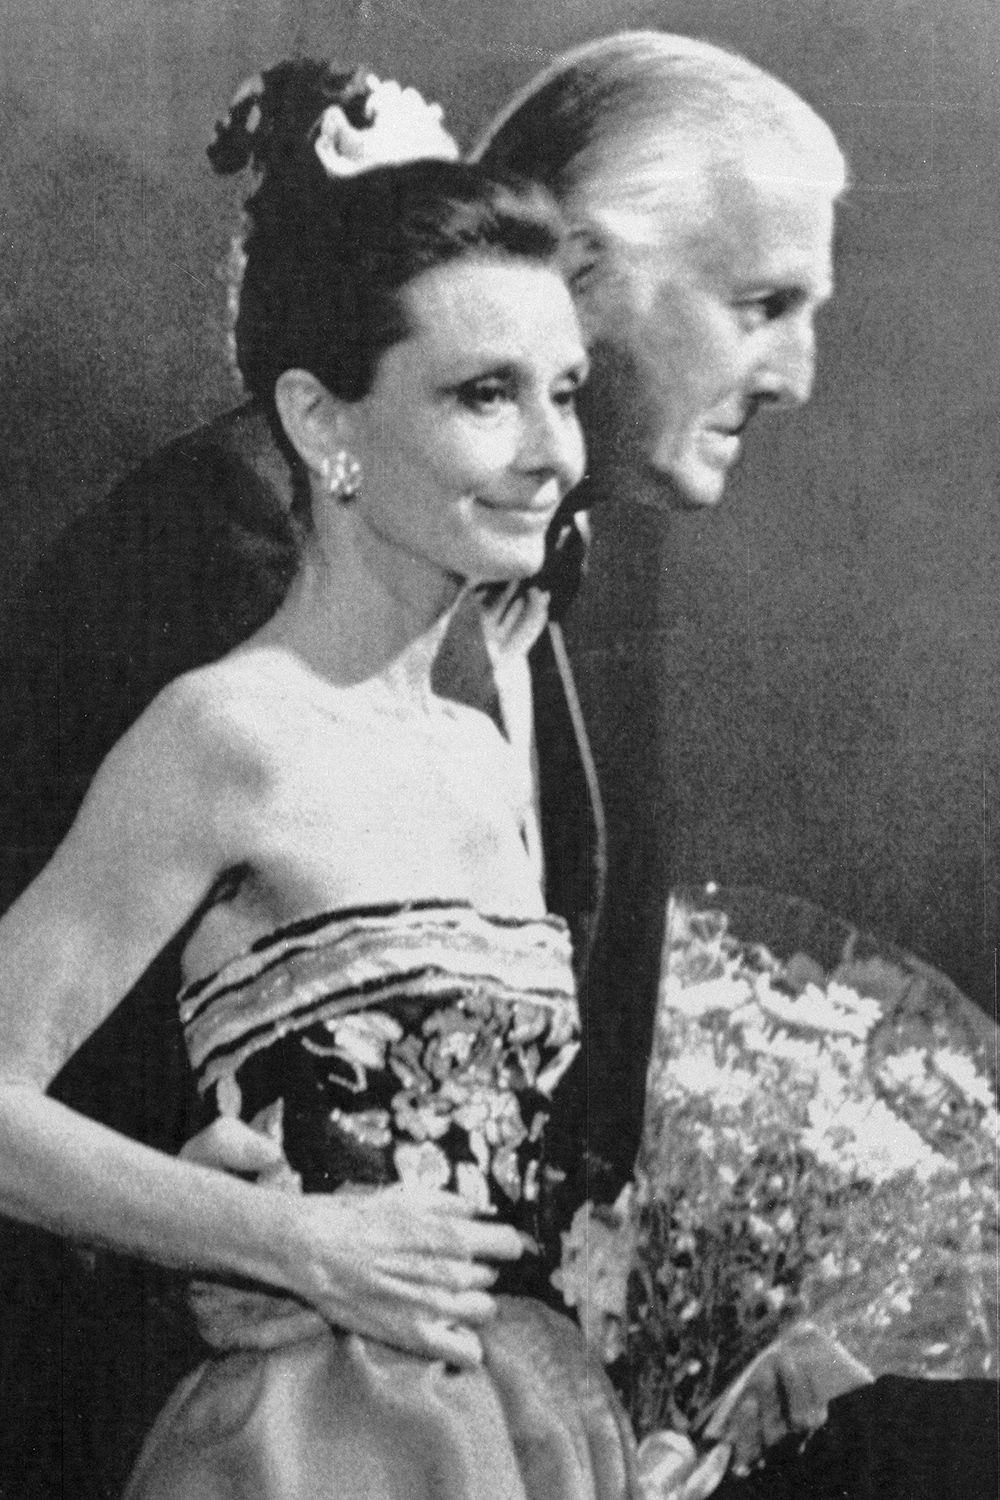 Audrey Hepburn And Hubert De Givenchy Photos Audrey Hepburn In